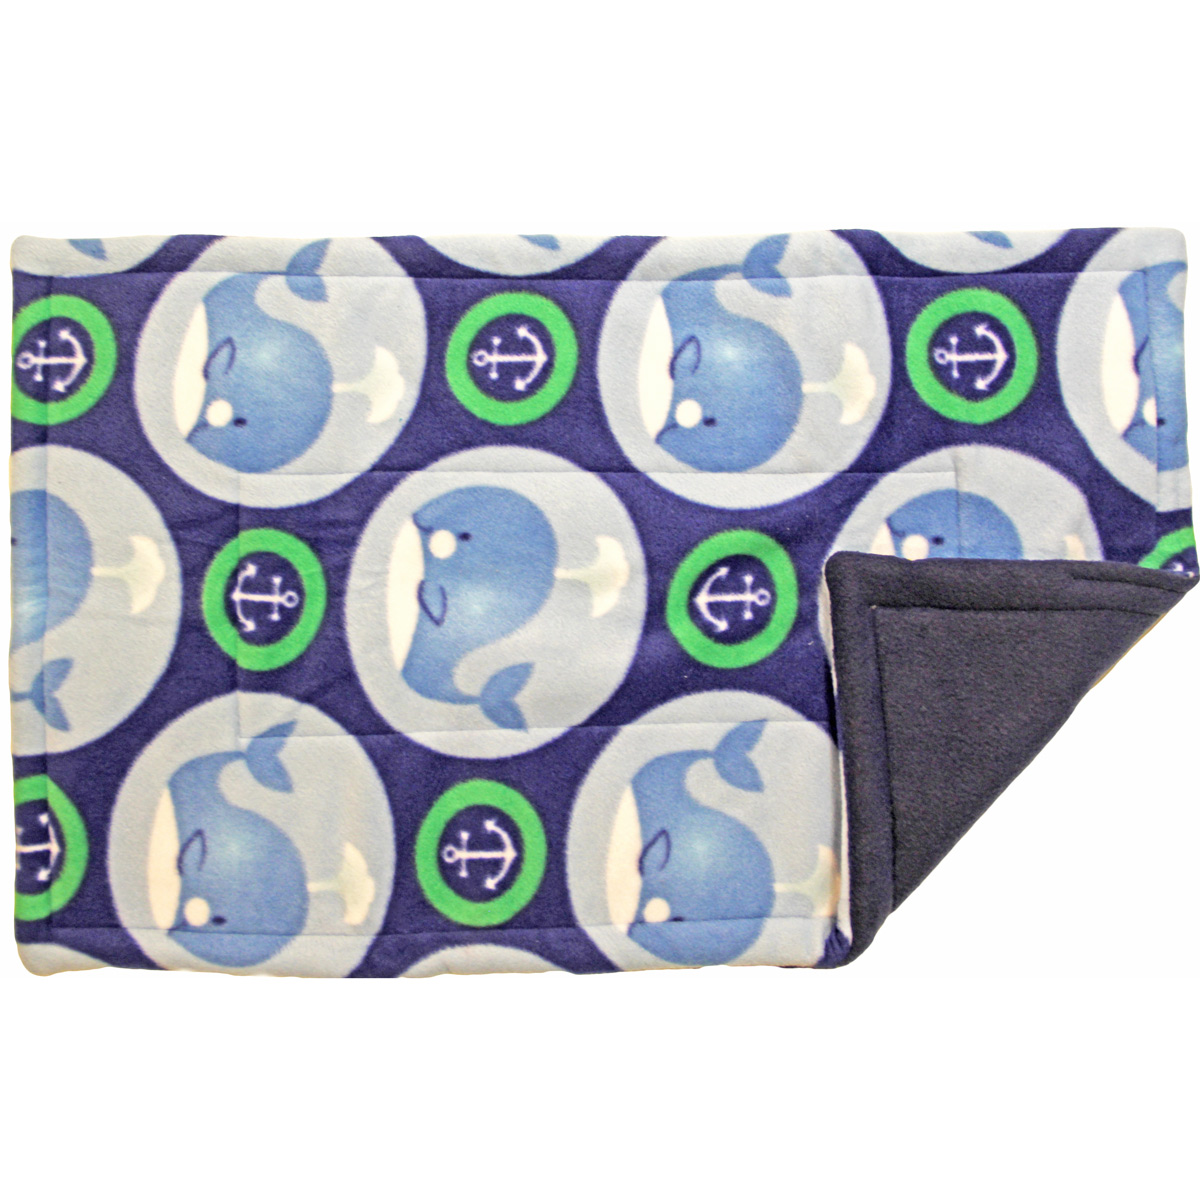 Lap Pad in Green Whales